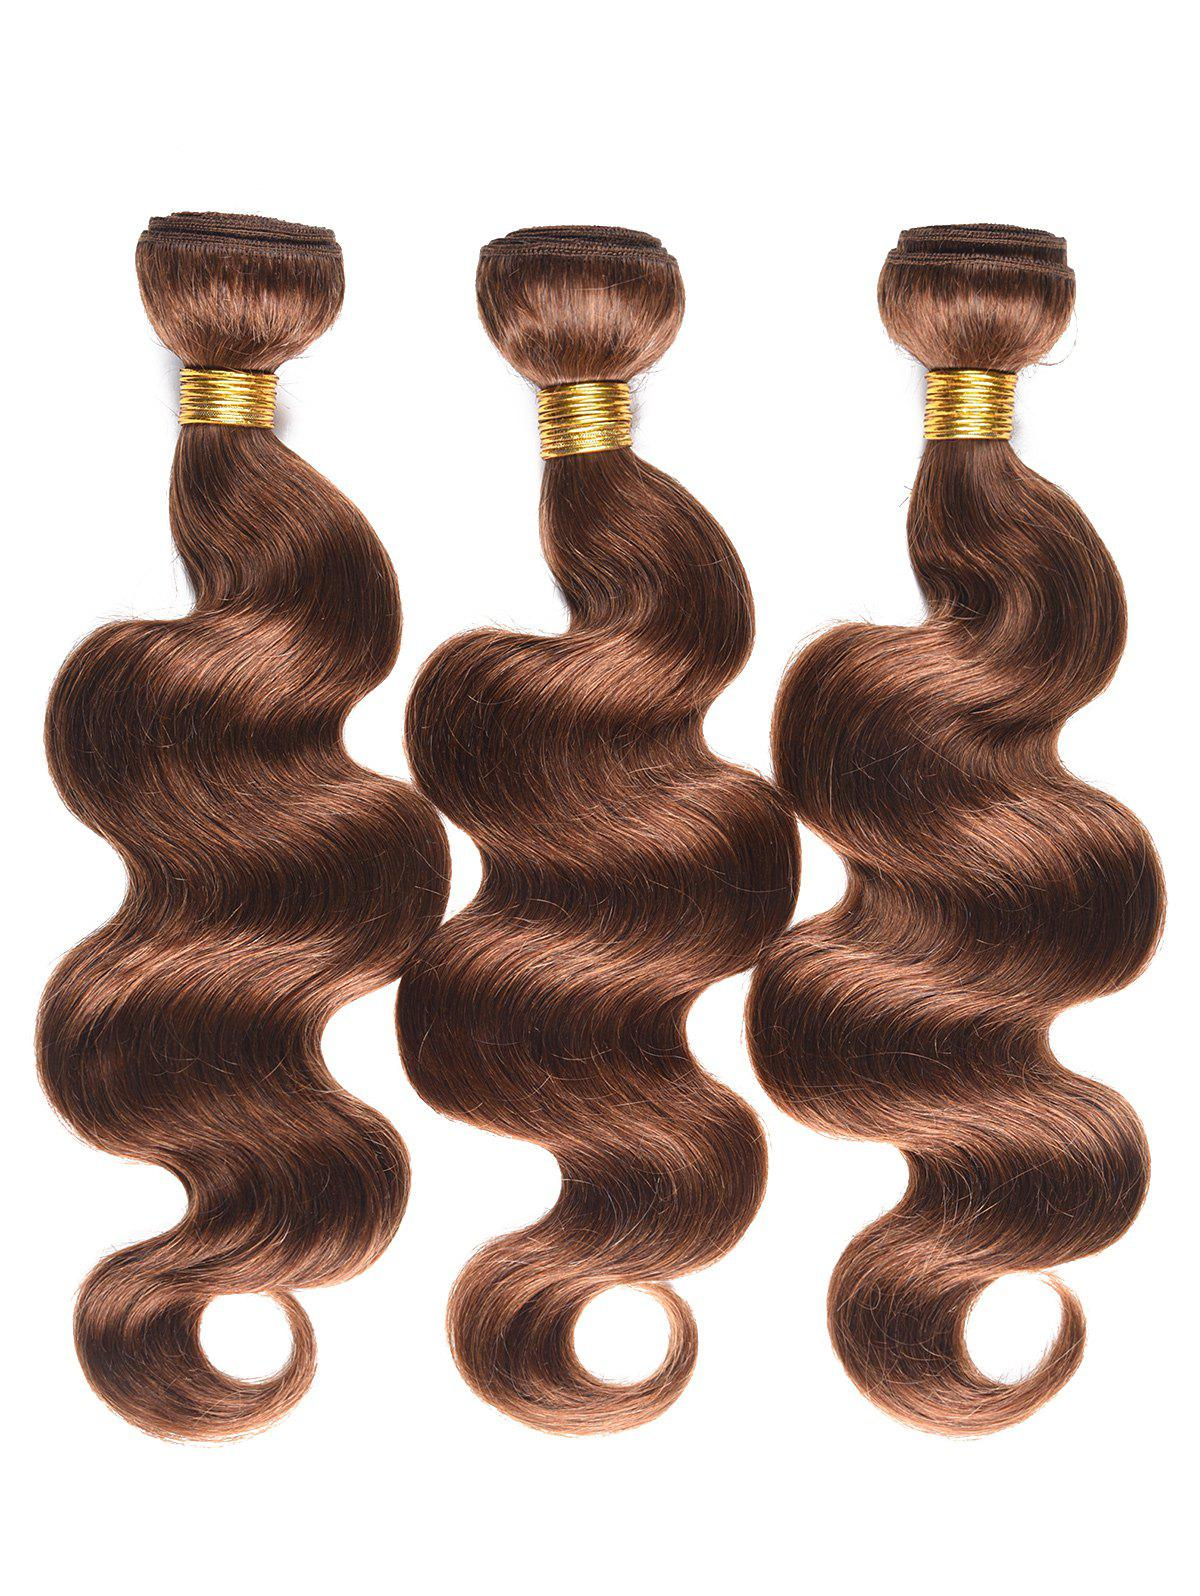 Real Human Hair Body Wave Hair Wefts - BROWN 16INCH*16INCH*16INCH